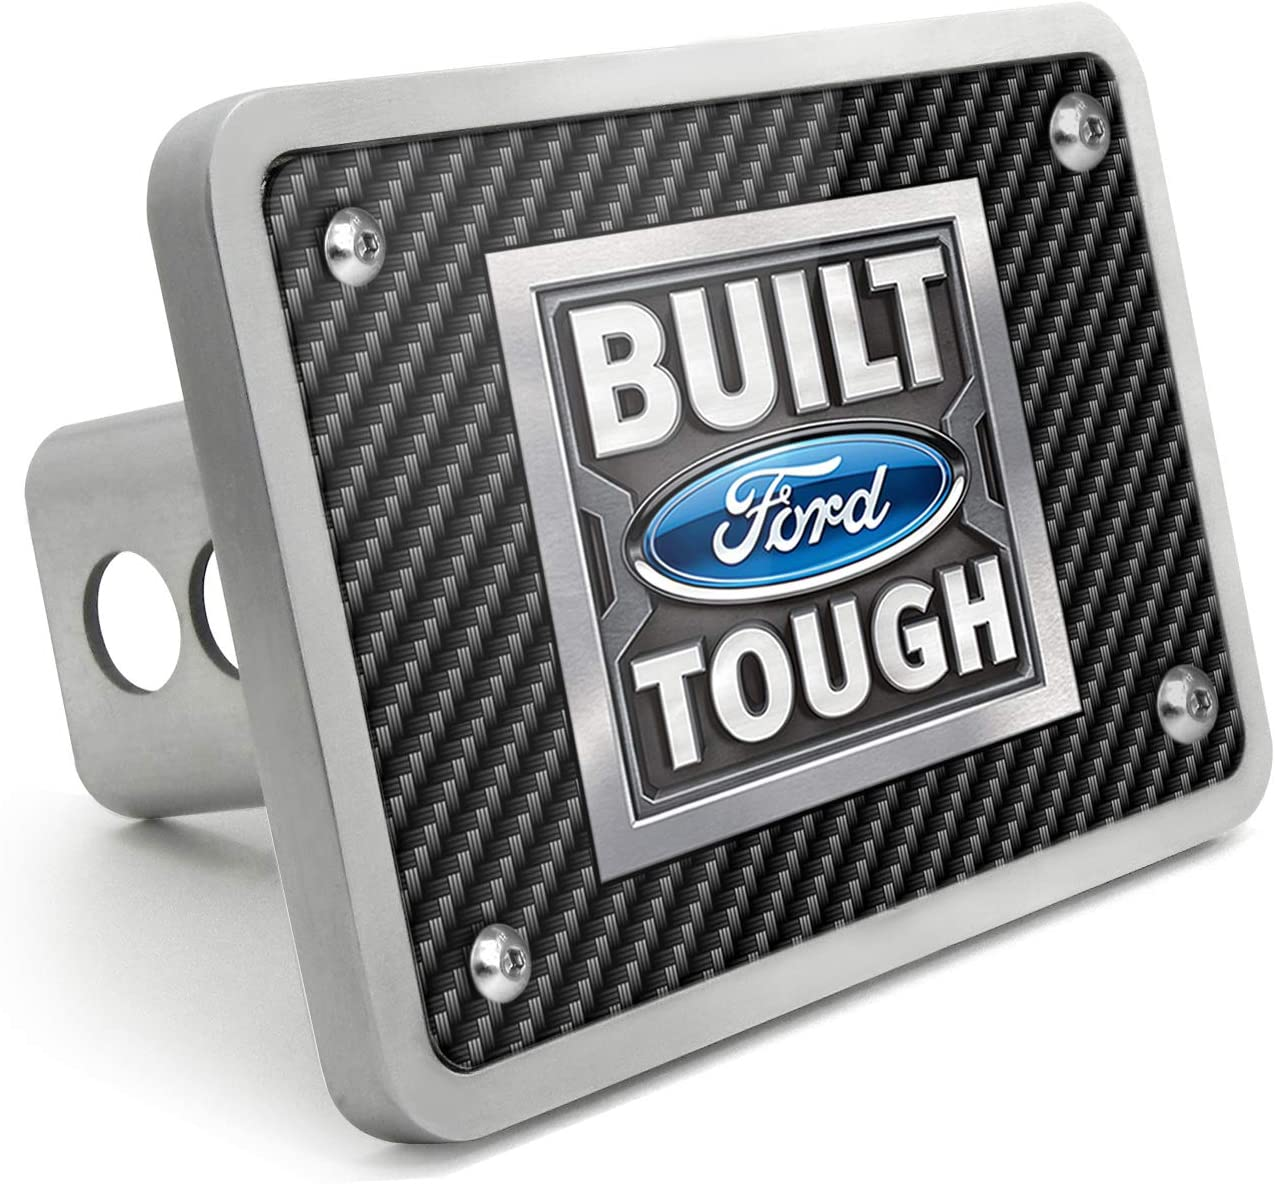 Super-Duty and SUV iPick Image Ford Built Ford Tough UV Graphic Brushed Silver Billet Aluminum 2 inch Tow Hitch Cover for F-150 Made in USA